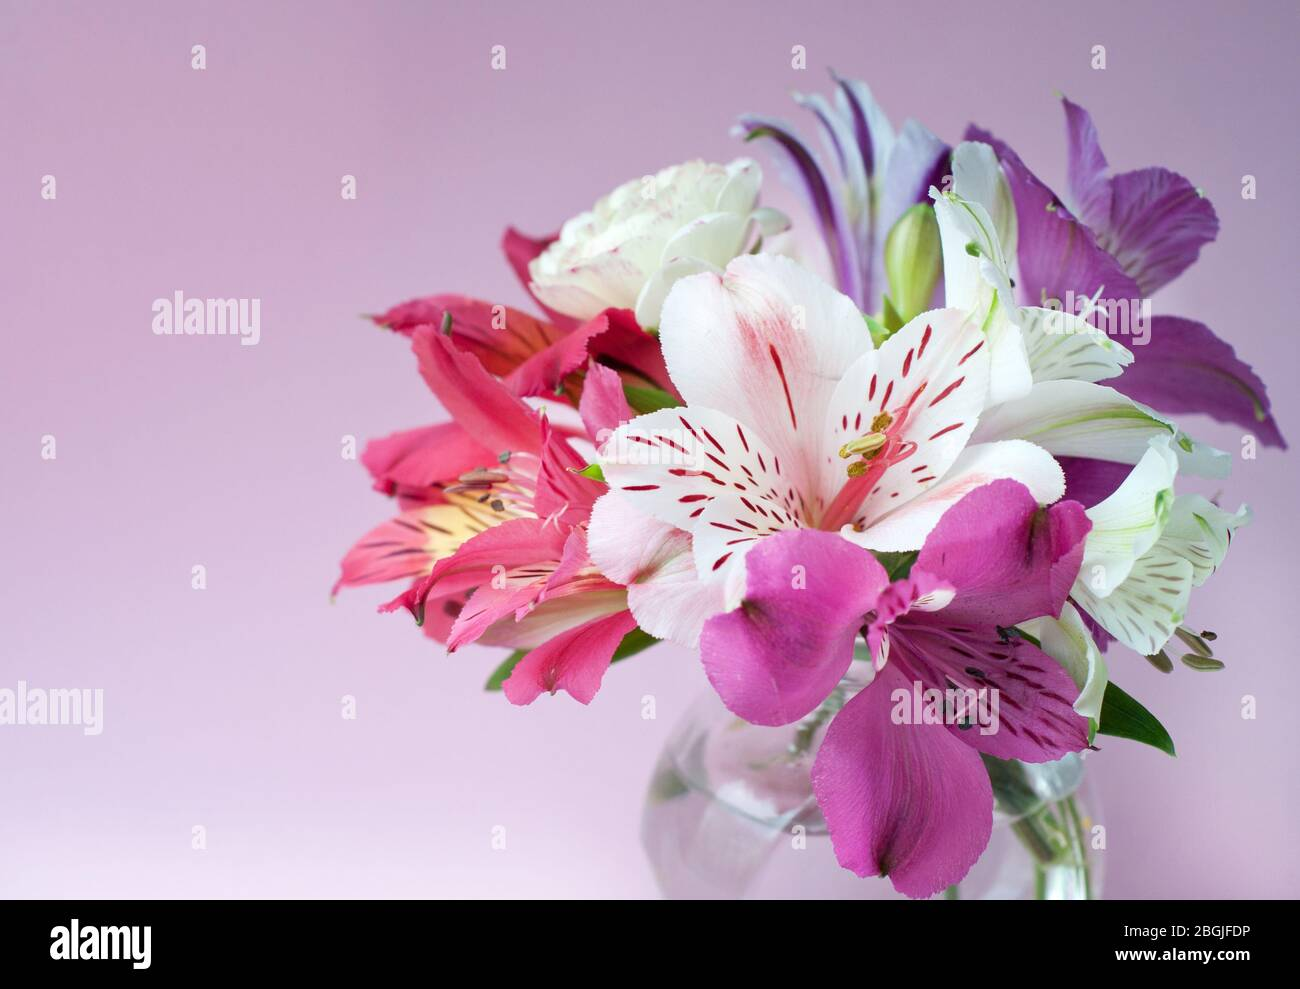 Beautiful Colorful Alstroemeria Flowers In Full Bloom With Green Leaves Peruvian Lily Bouquet Of Flowers On Pink Background Stock Photo Alamy